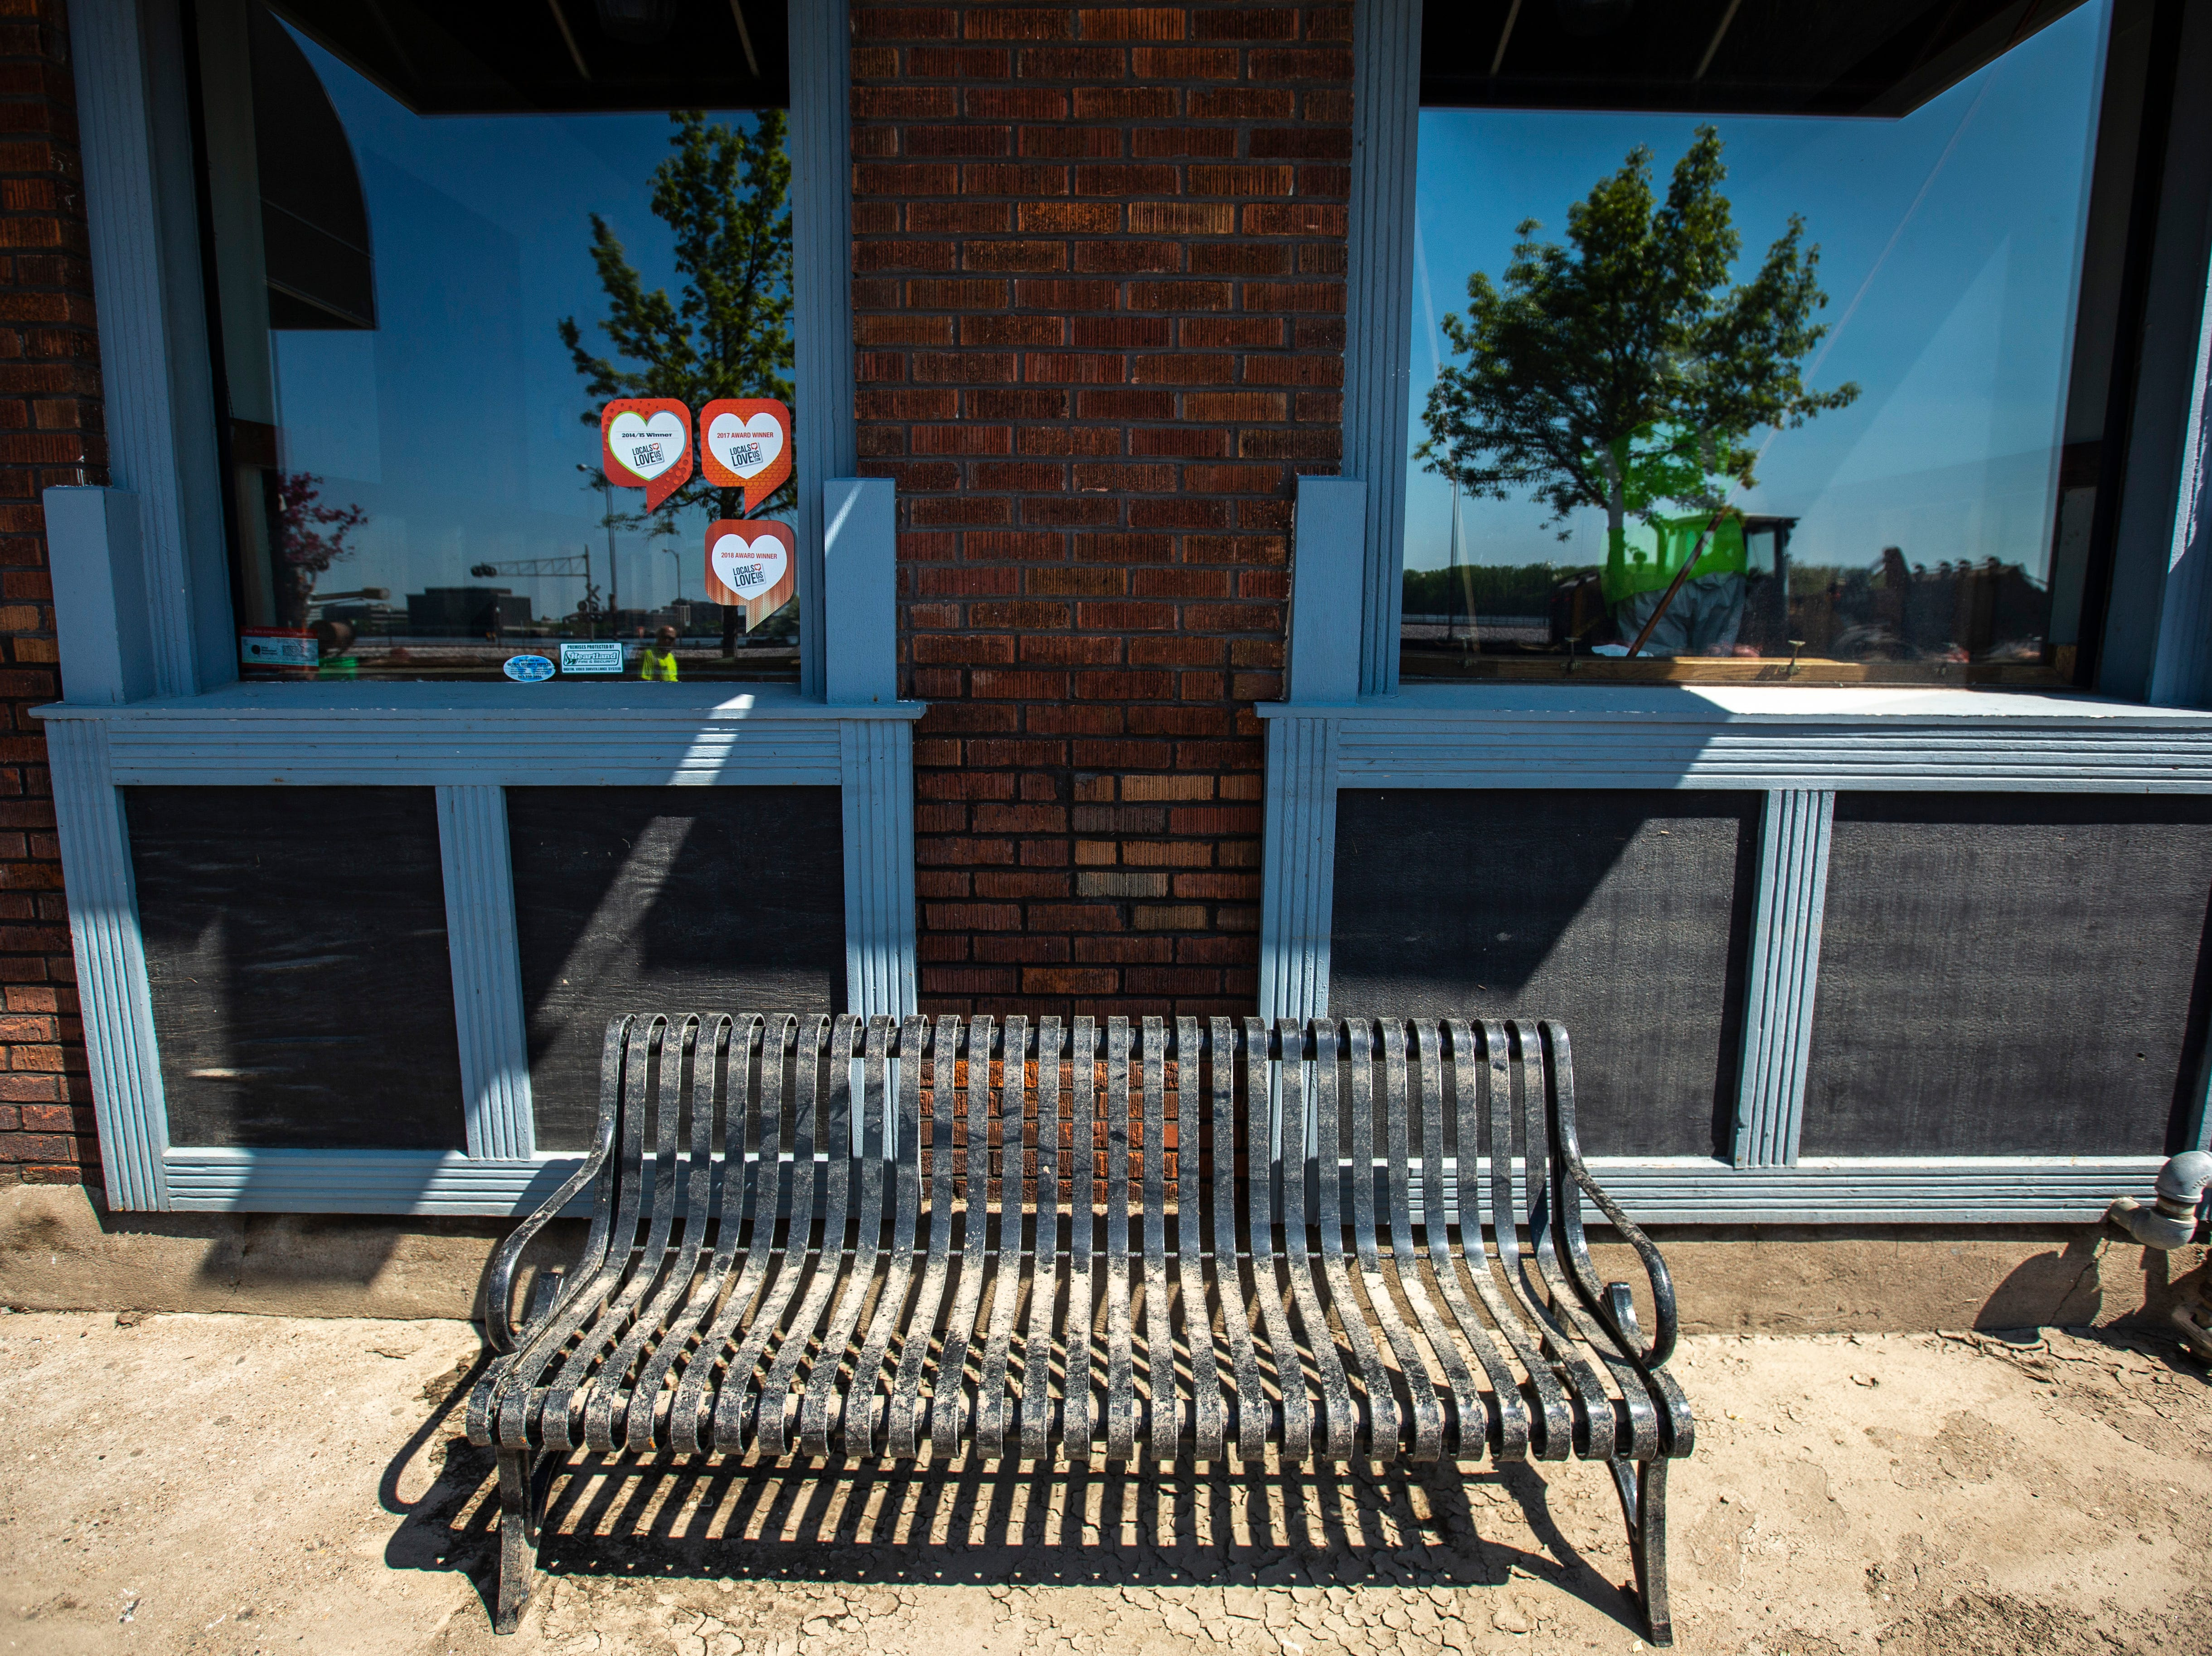 A bench in front of Front Street Brewery shows the remains of debris as cleanup begins after floodwaters receded, Wednesday, May 15, 2019, in downtown Davenport, Iowa.